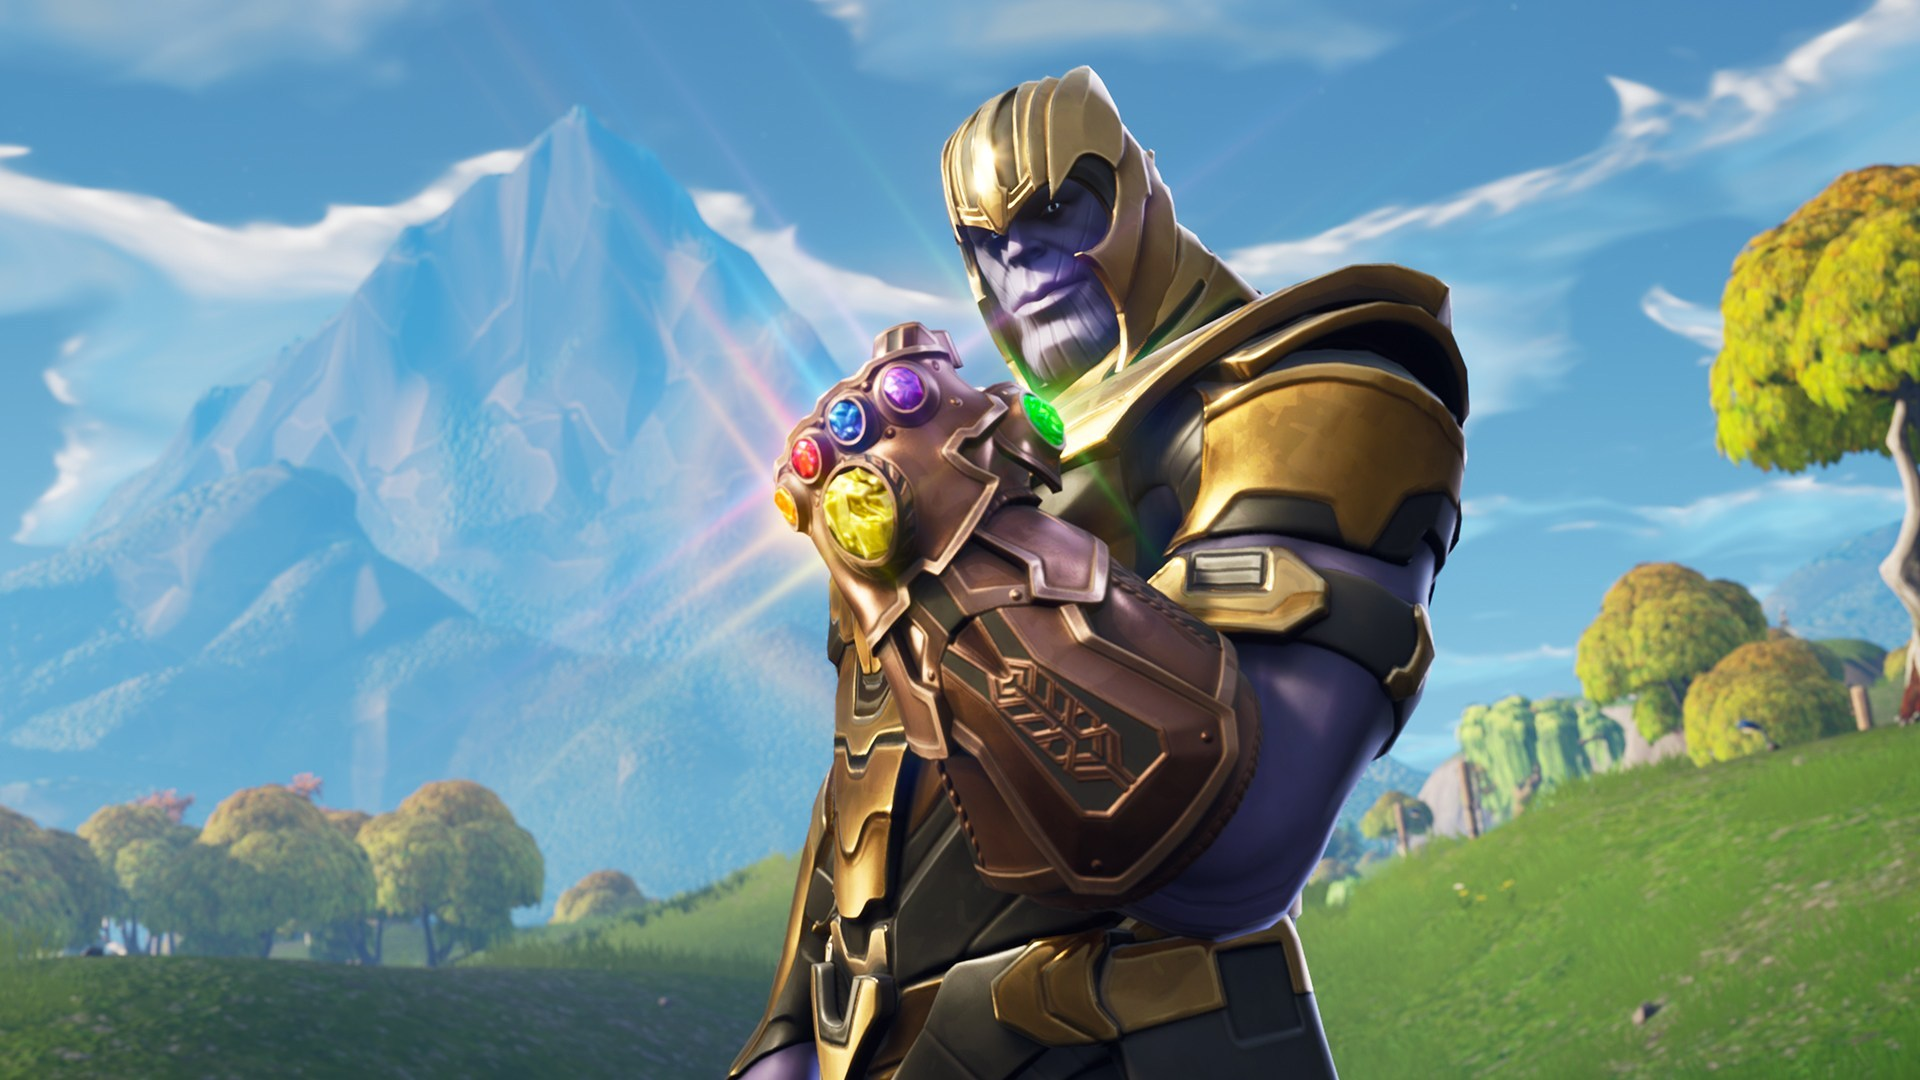 HD Fortnite WallPapers for PC Smartphones   TECHGAMESNEWS 1920x1080